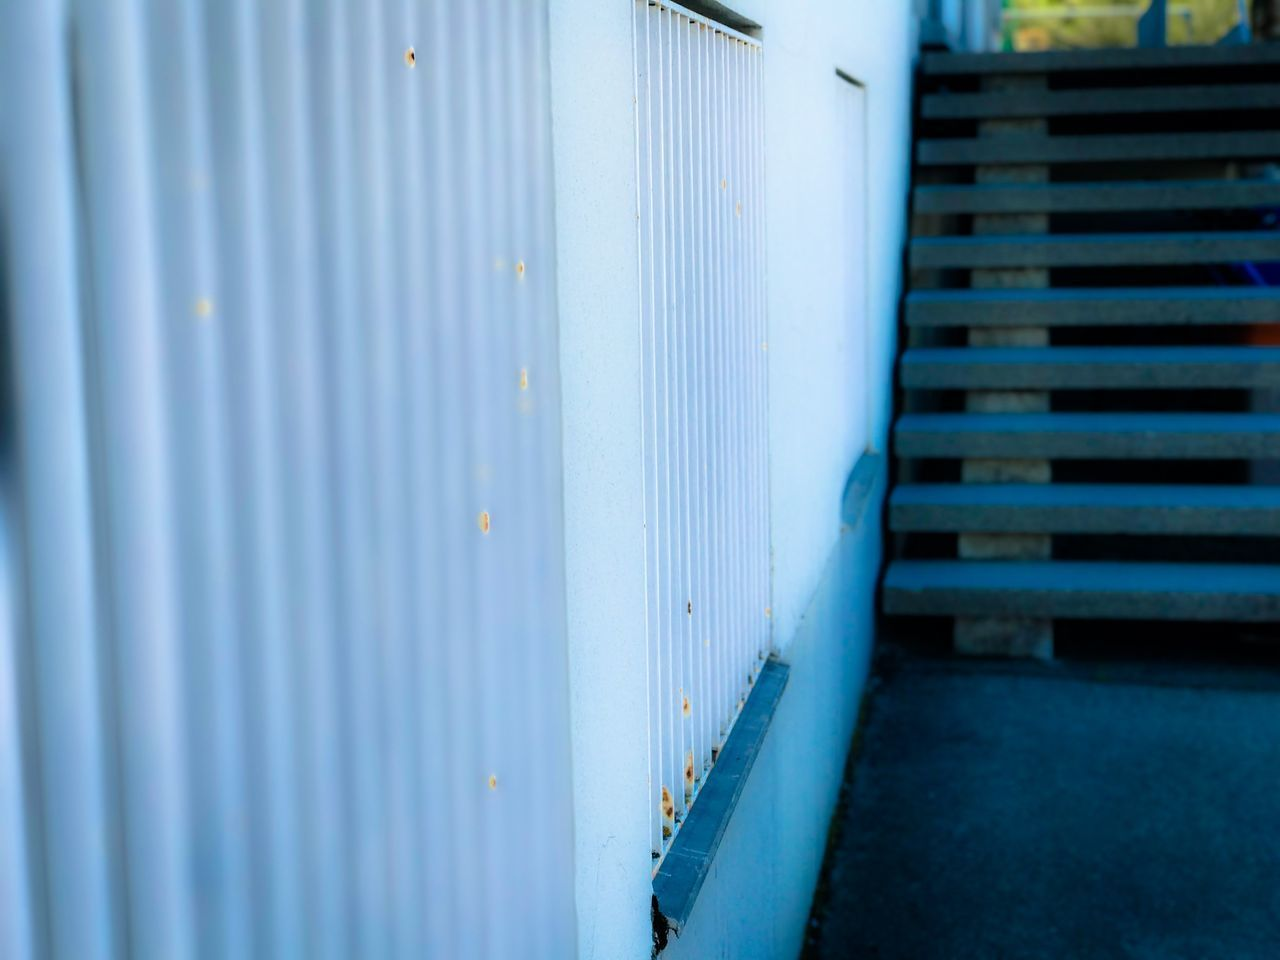 Architecture Blue Building Exterior Built Structure Cargo Container Close-up Corrugated Iron Day Door Freight Transportation Industry Loading Dock Metal No People Outdoors Parking Garage Shipping  Shutter Transportation Warehouse